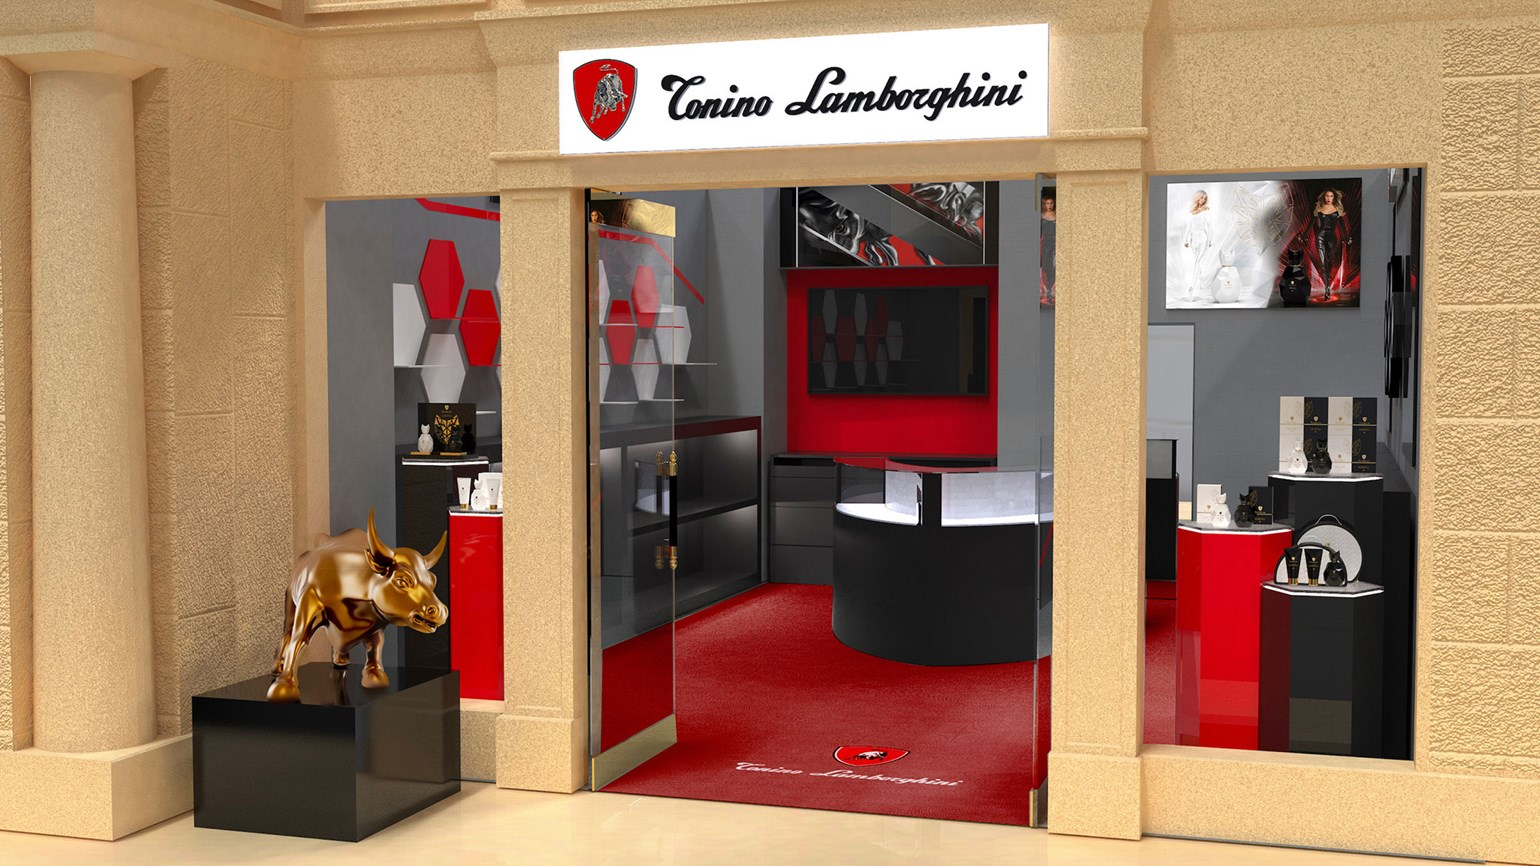 Tonino Lamborghini to open shop in Caesars Palace